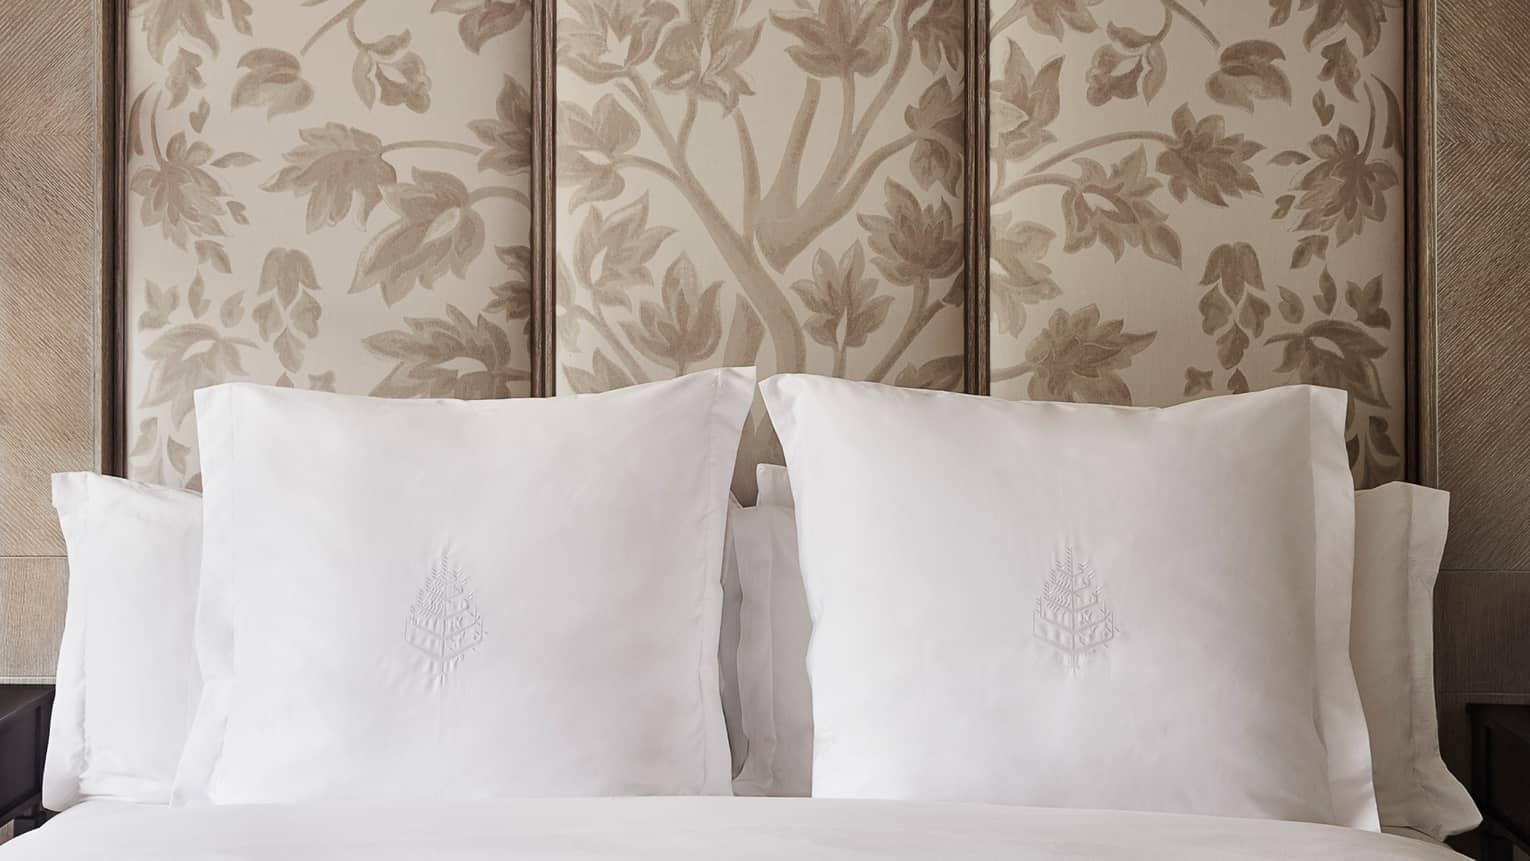 A queen-sized bed with white Four Seasons pillows and a ceiling-height floral upholstered headboard